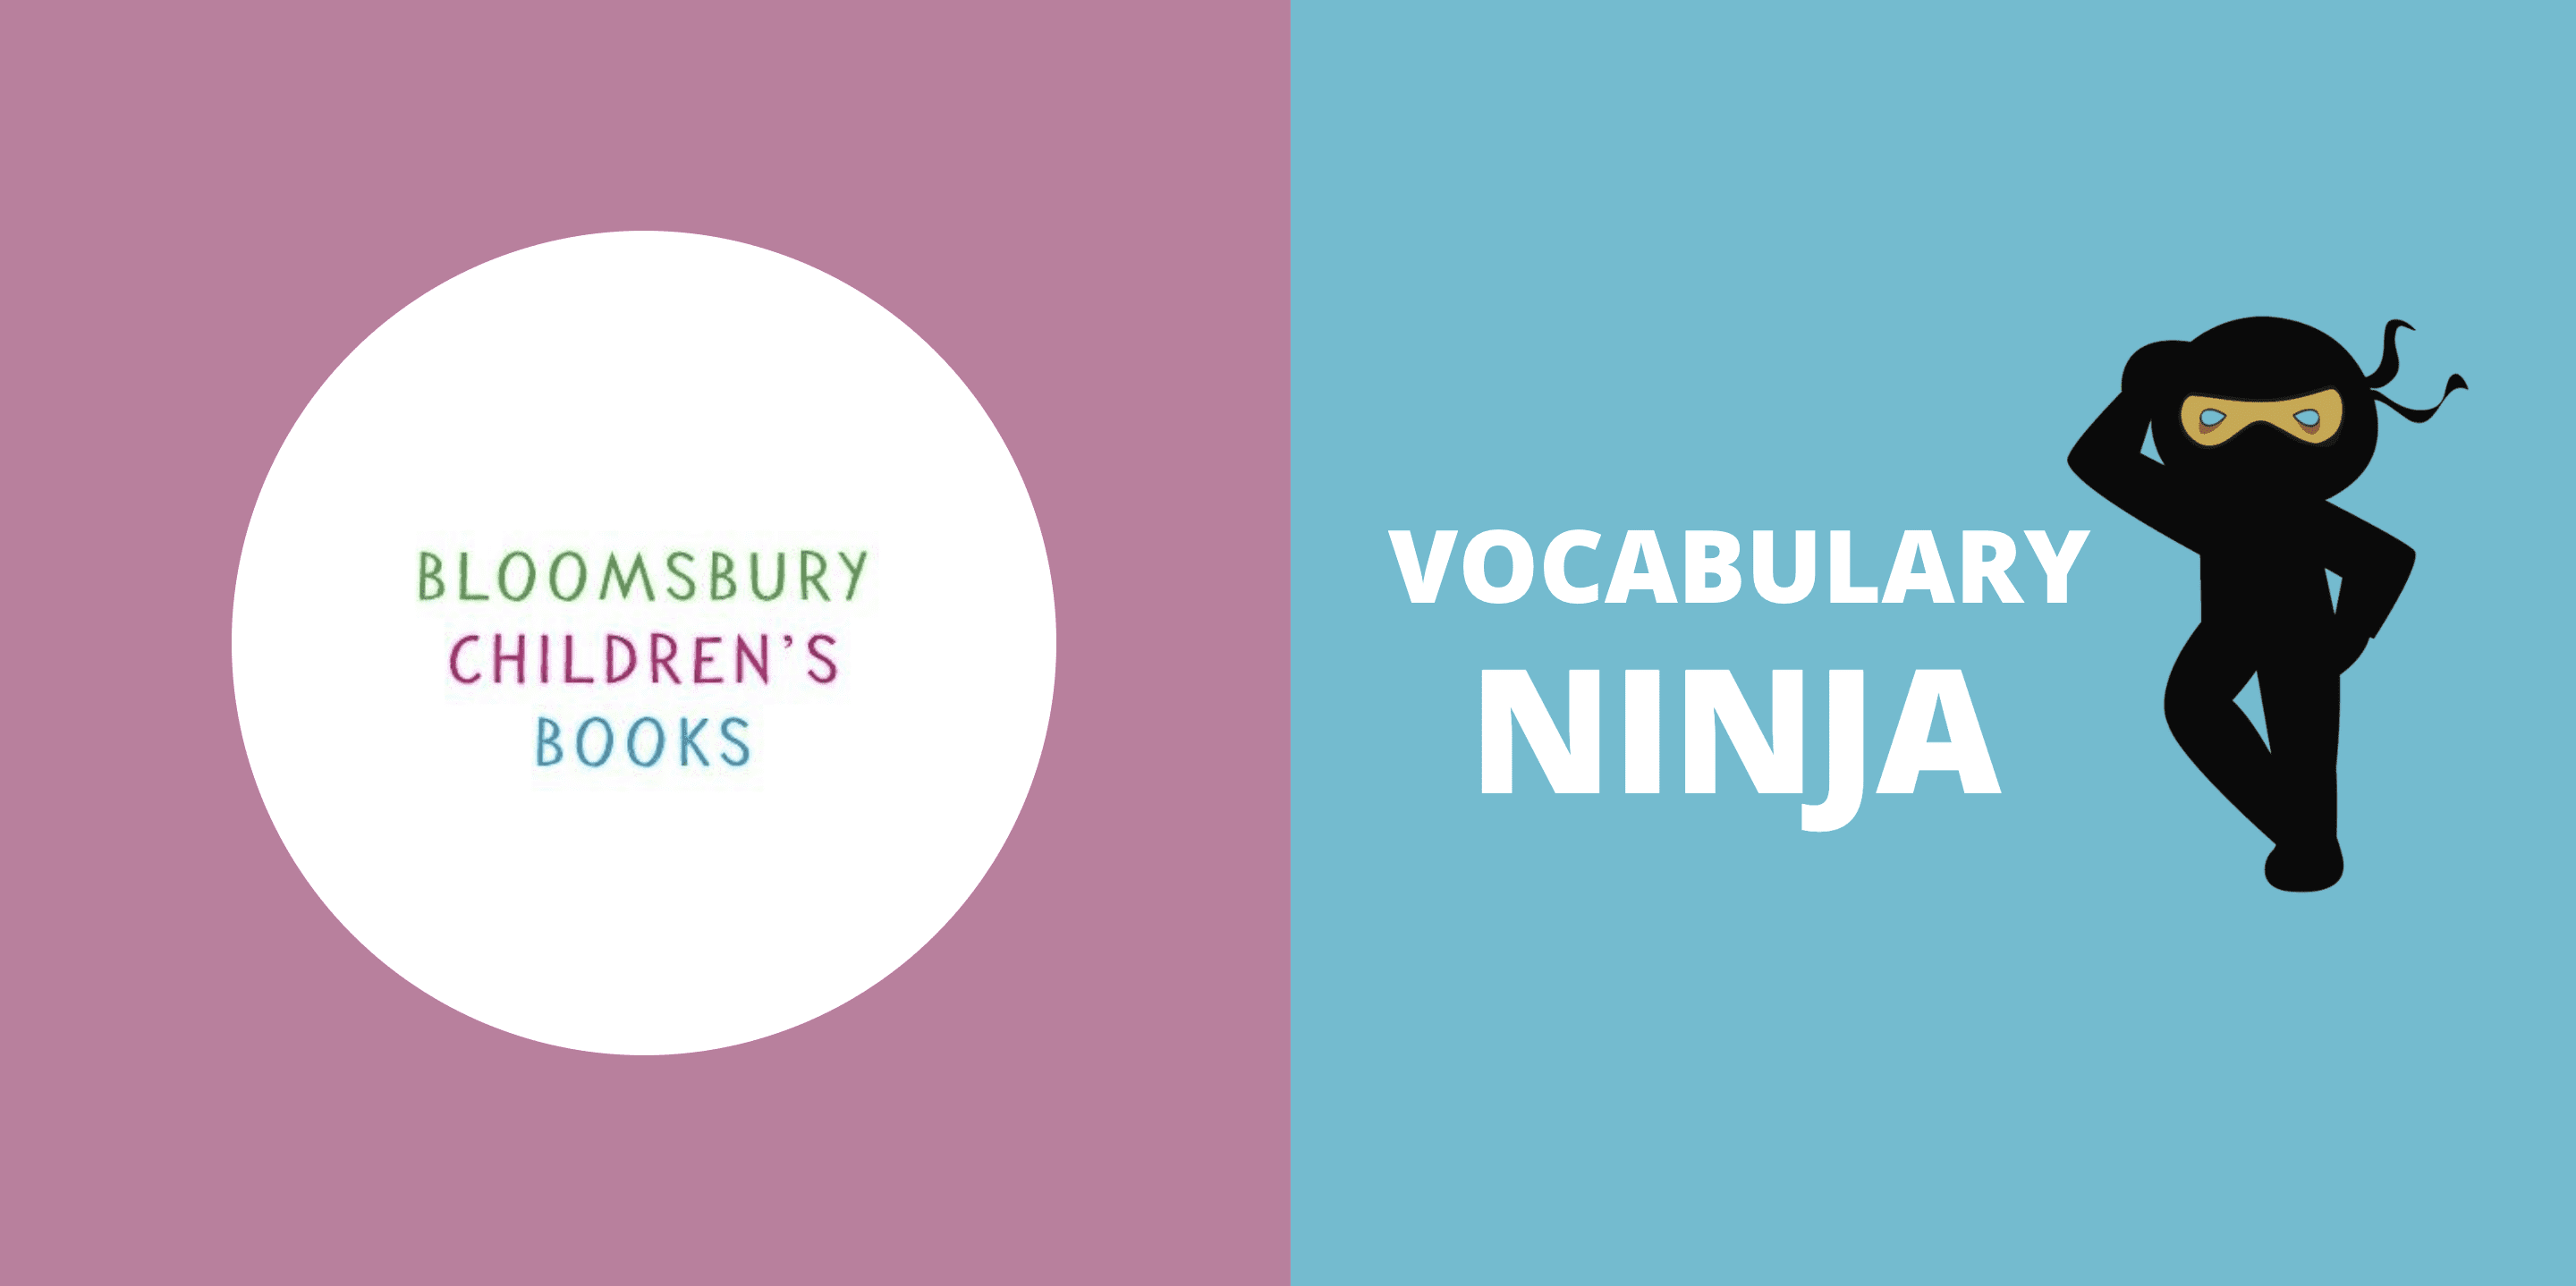 Vocabulary Ninja and Bloomsbury Kids Livestream